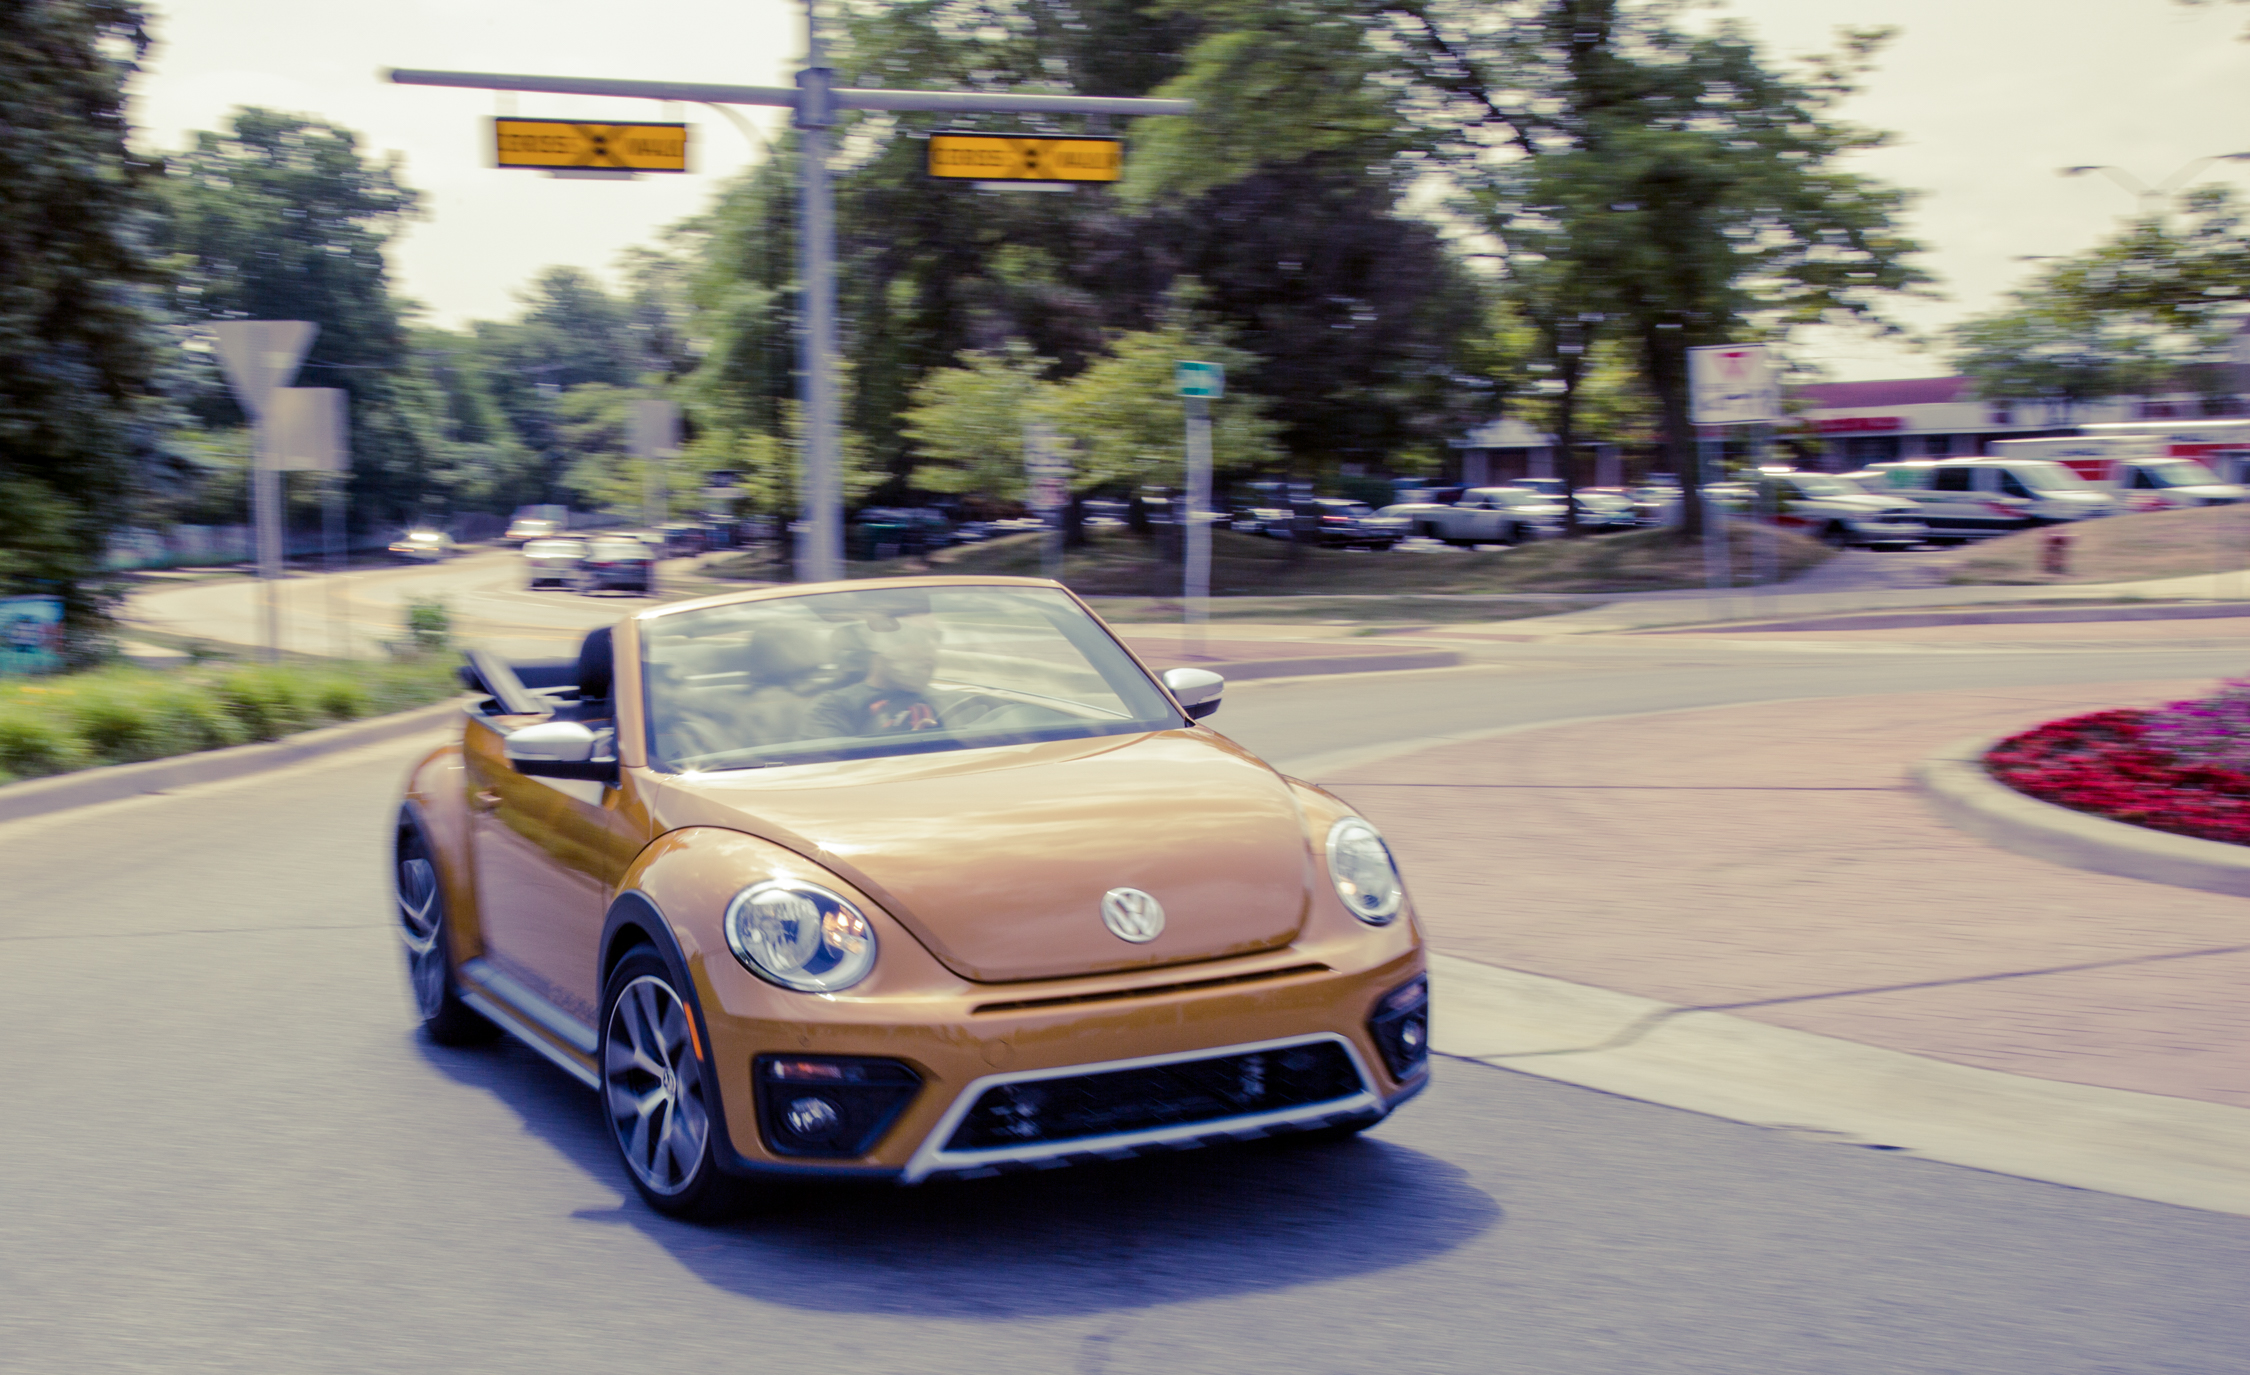 2017 Volkswagen Beetle Dune Convertible Test Drive Front View (View 11 of 19)